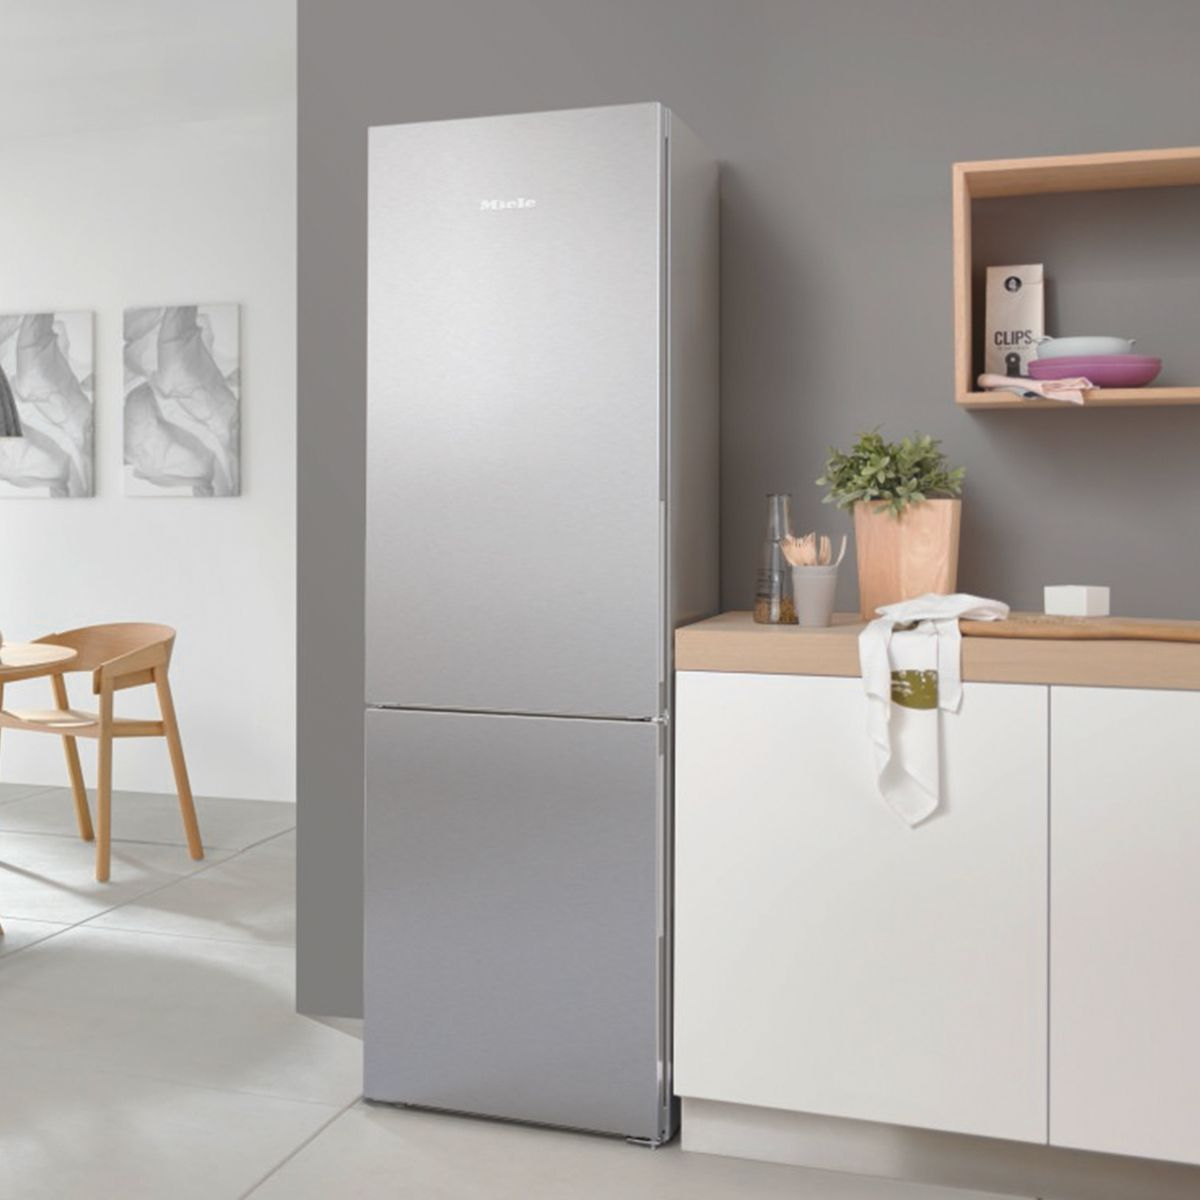 Fridges & Freezers | Fridge Freezer | Mini Fridge | John Lewis